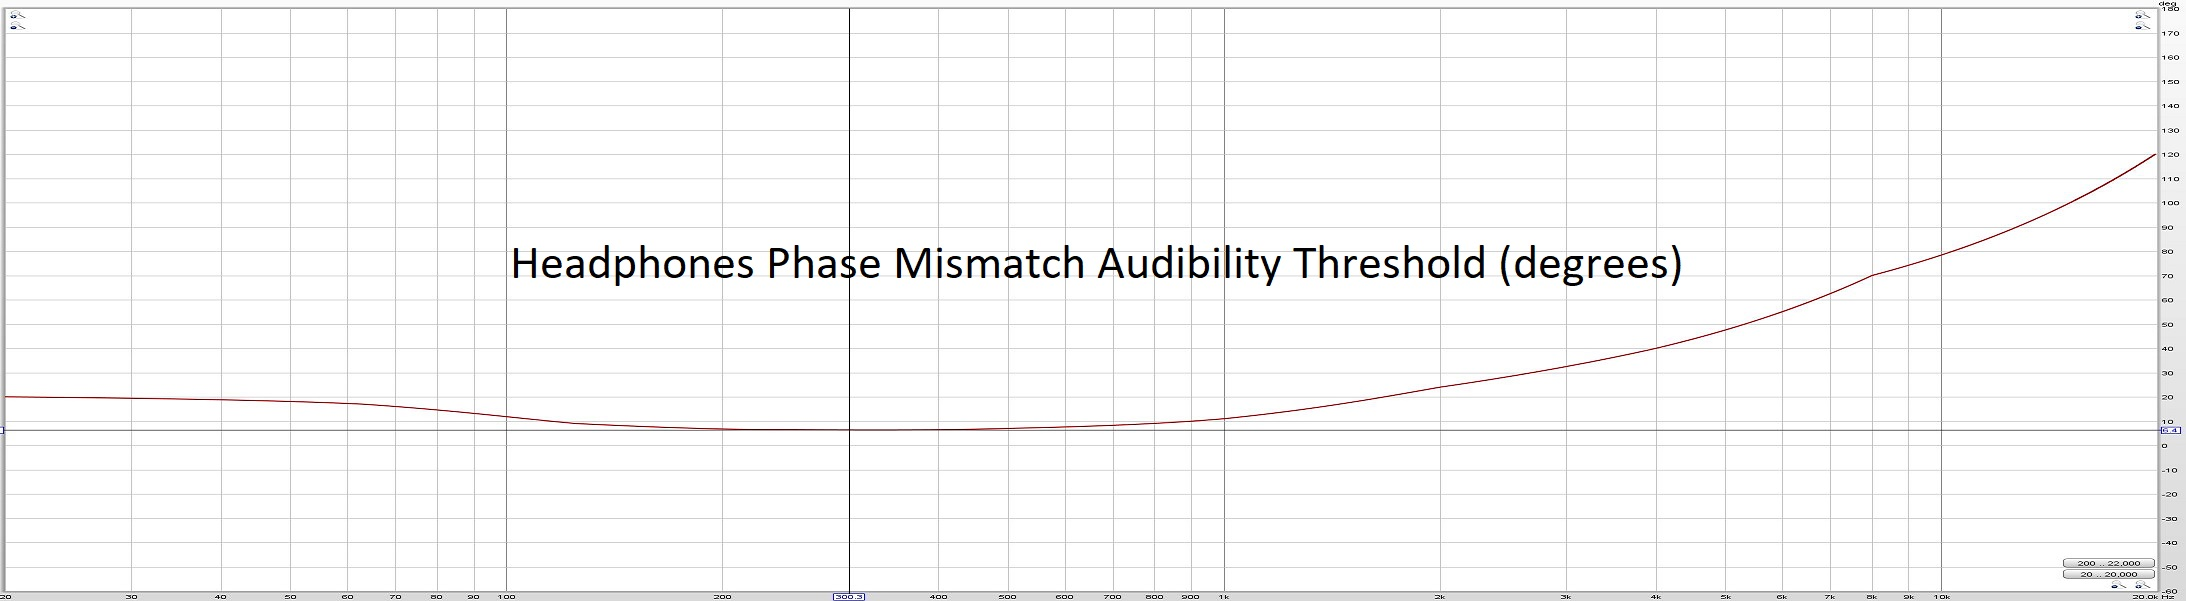 headphones phase mismatch audbility threshold